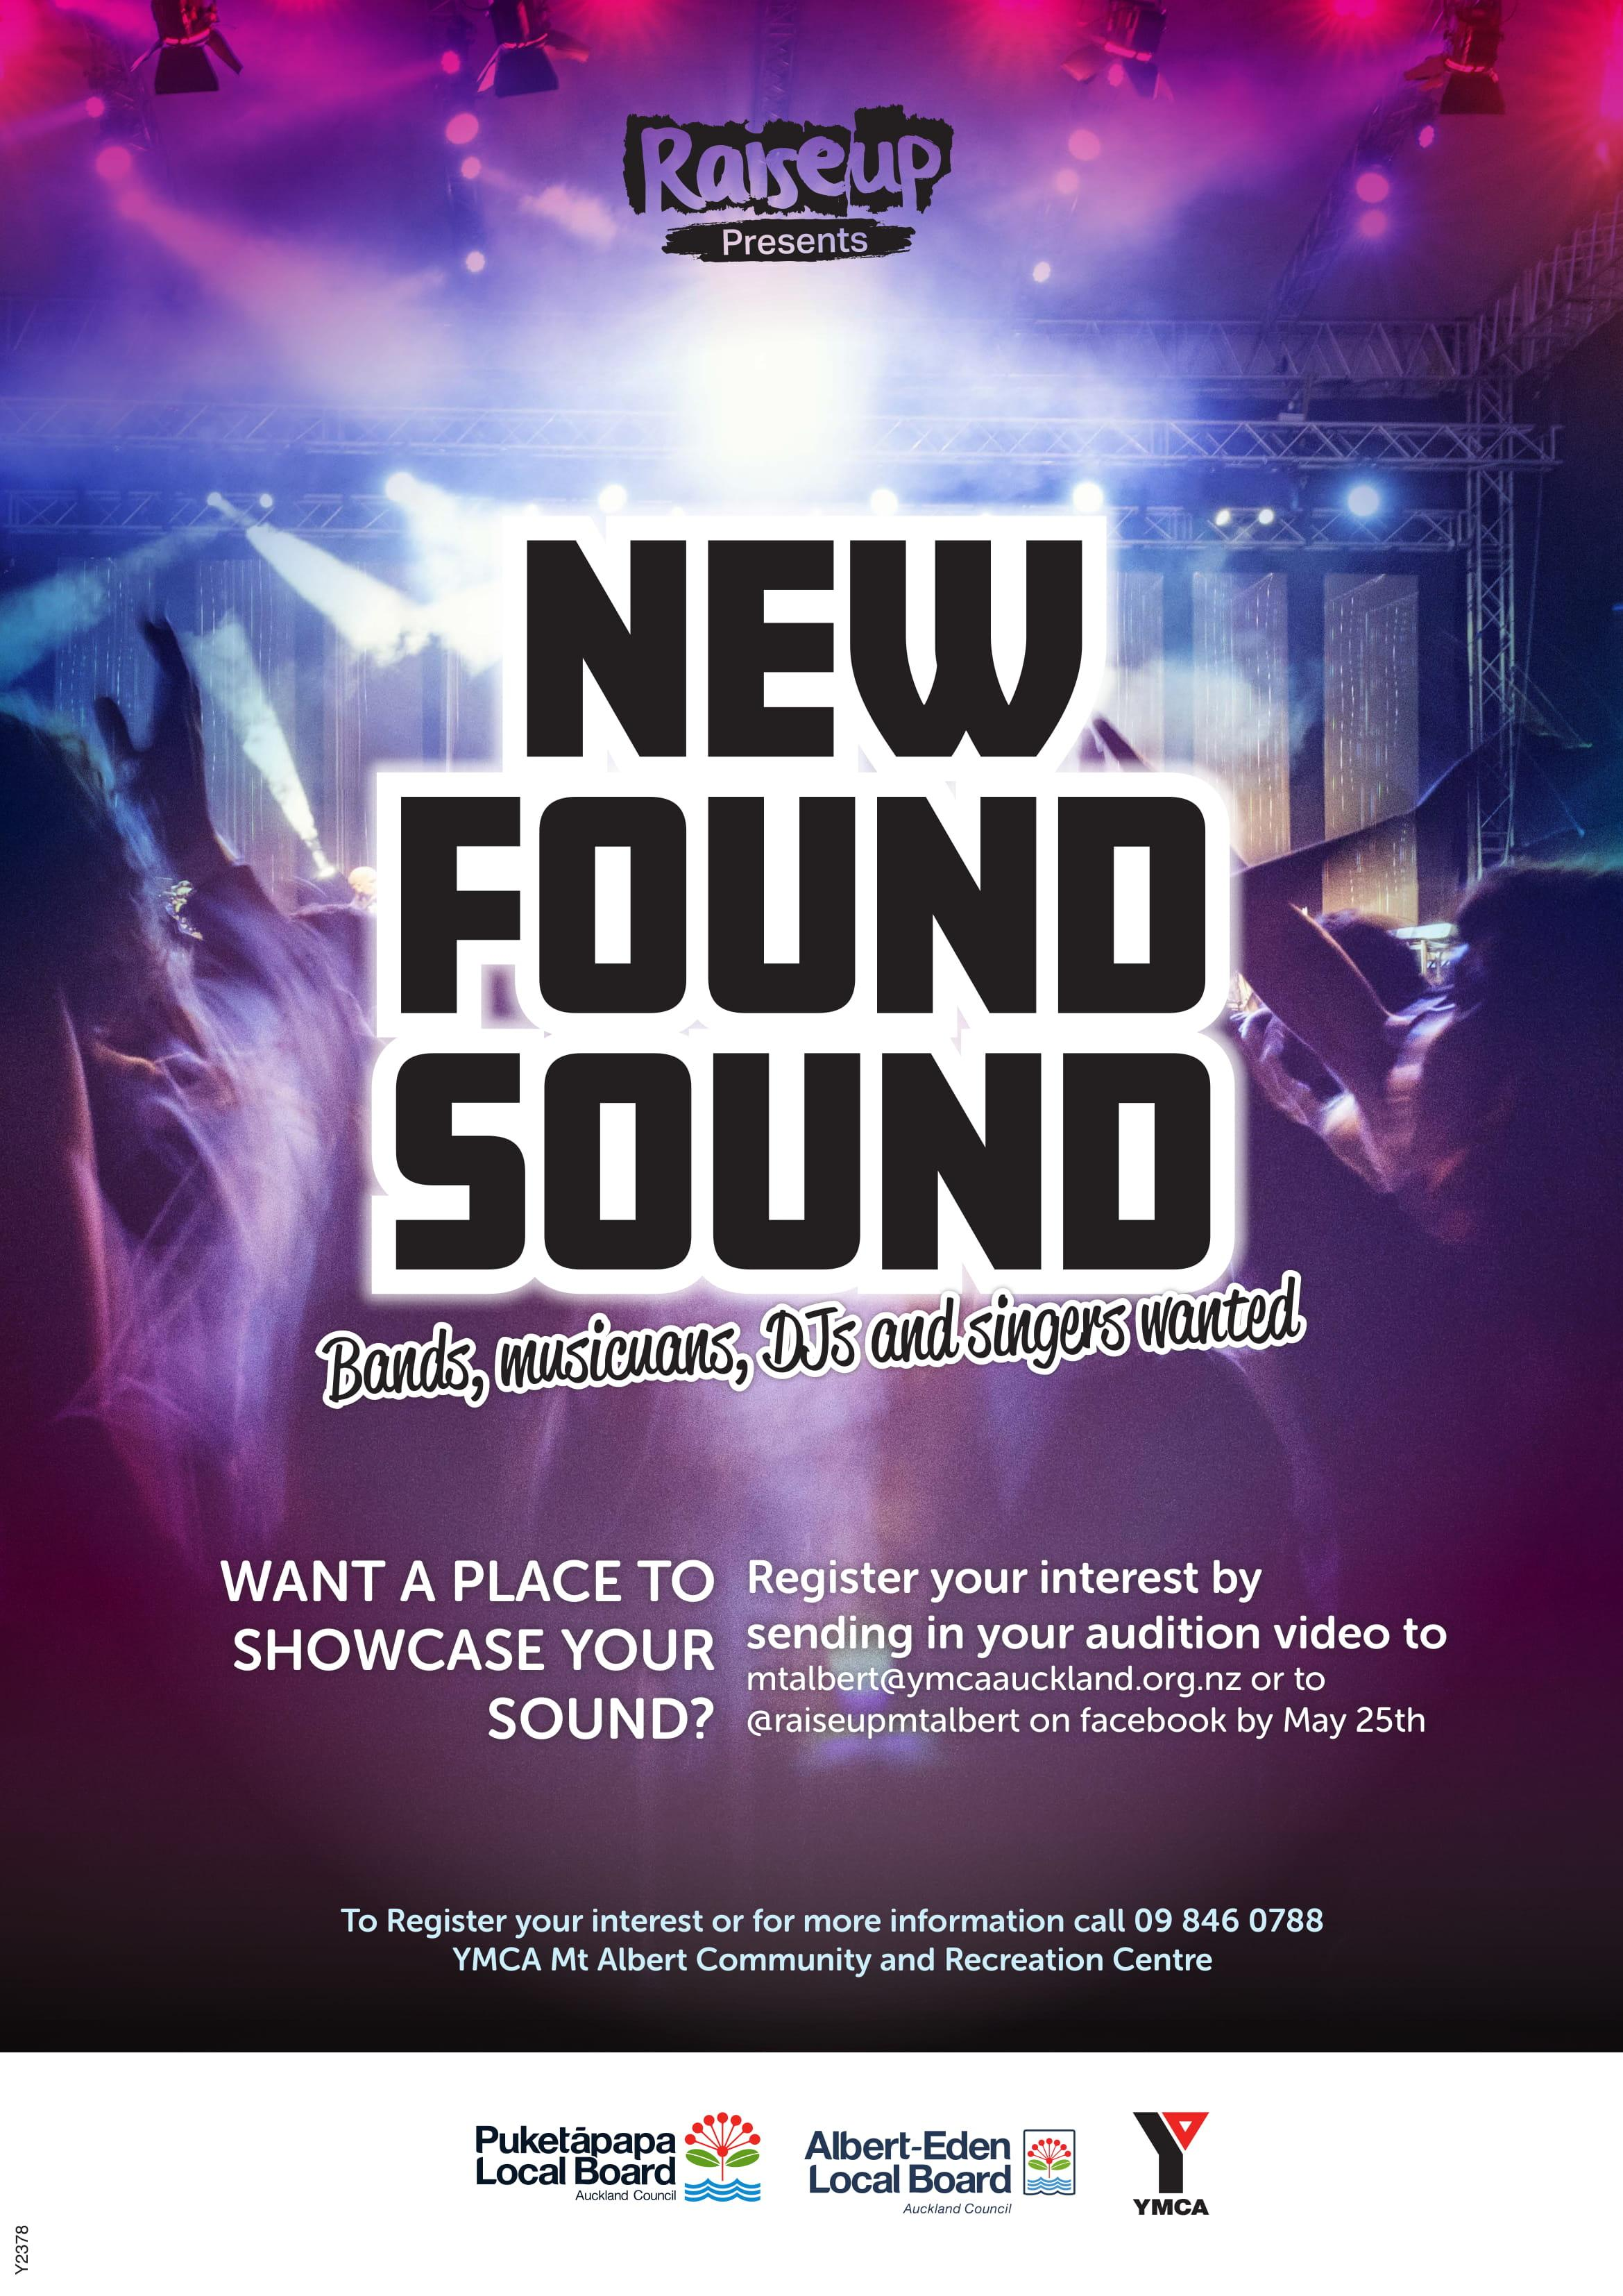 Y2378-Mt-Albert-New-Found-Sound-A3-2-1.j